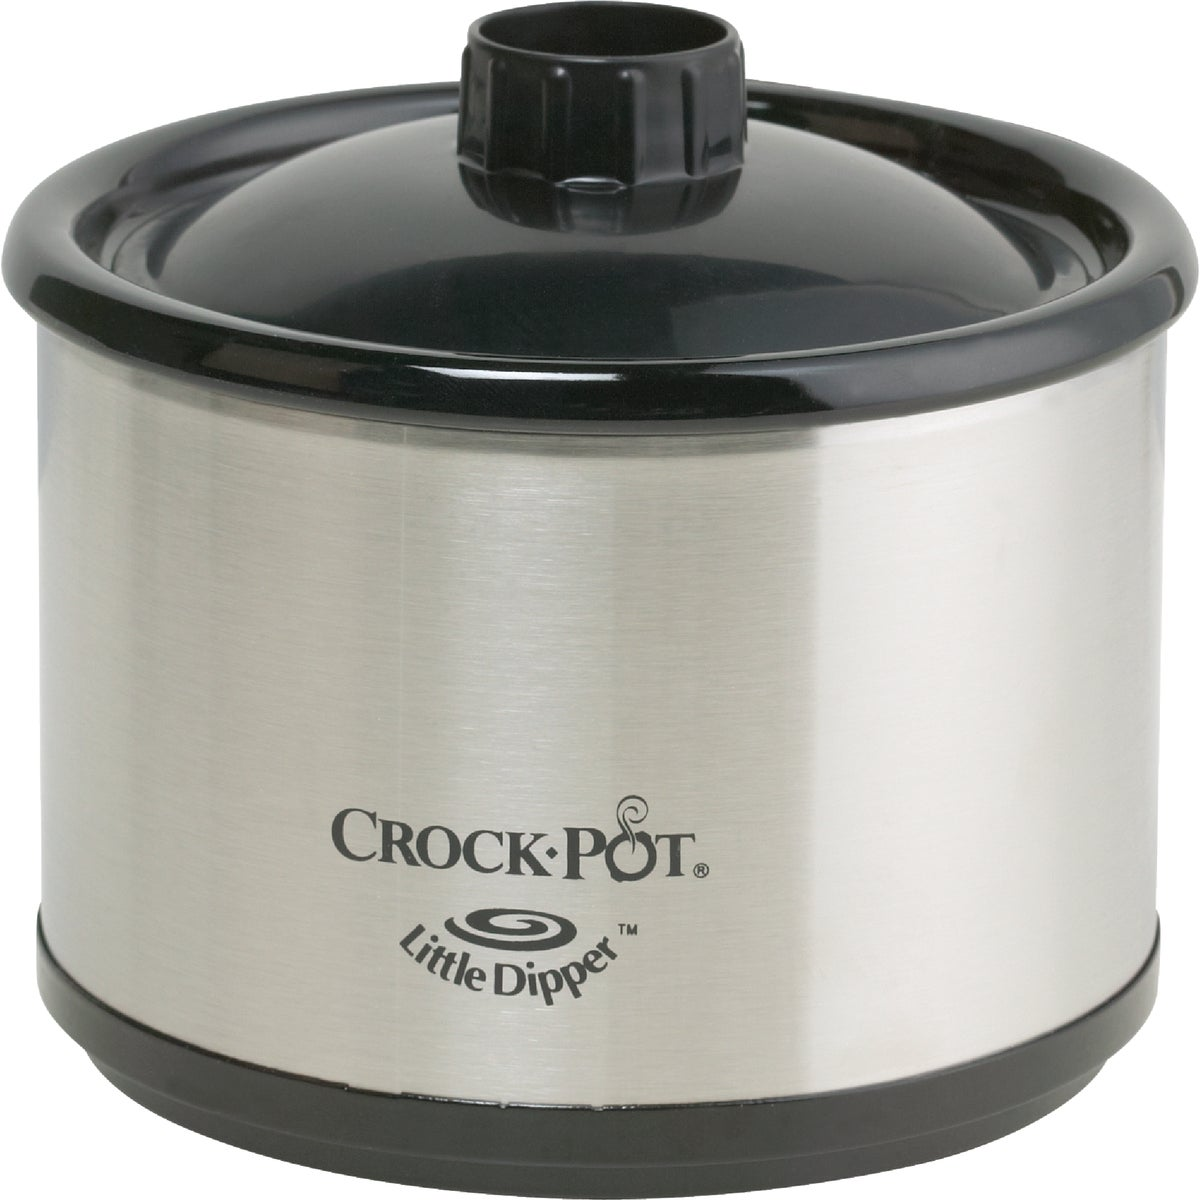 16OZ CROCKPT SLOW COOKER